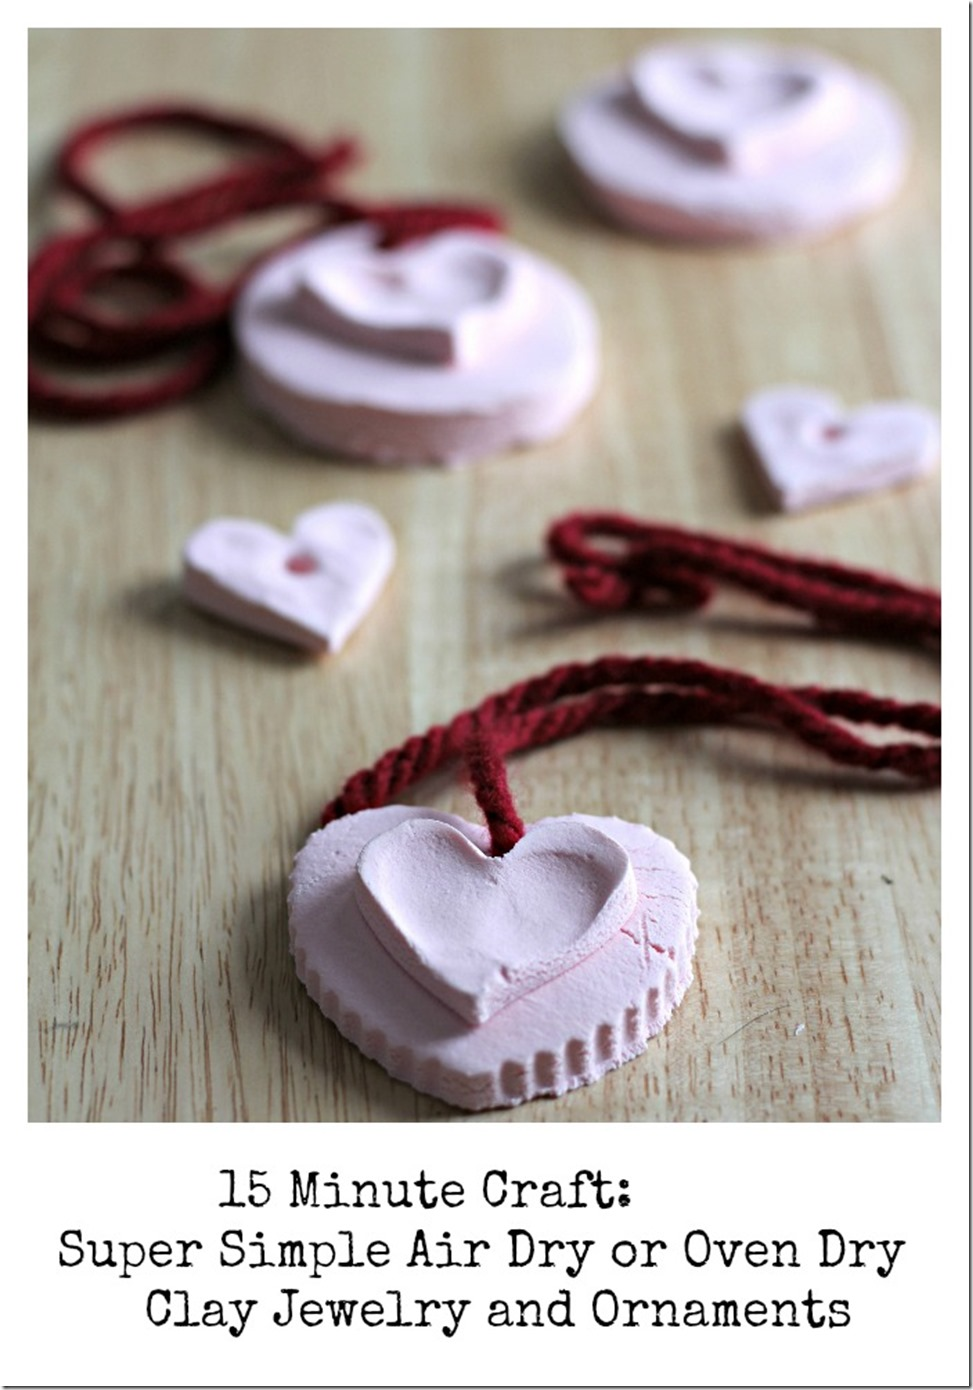 15 minute craft - clay ornaments and jewelry